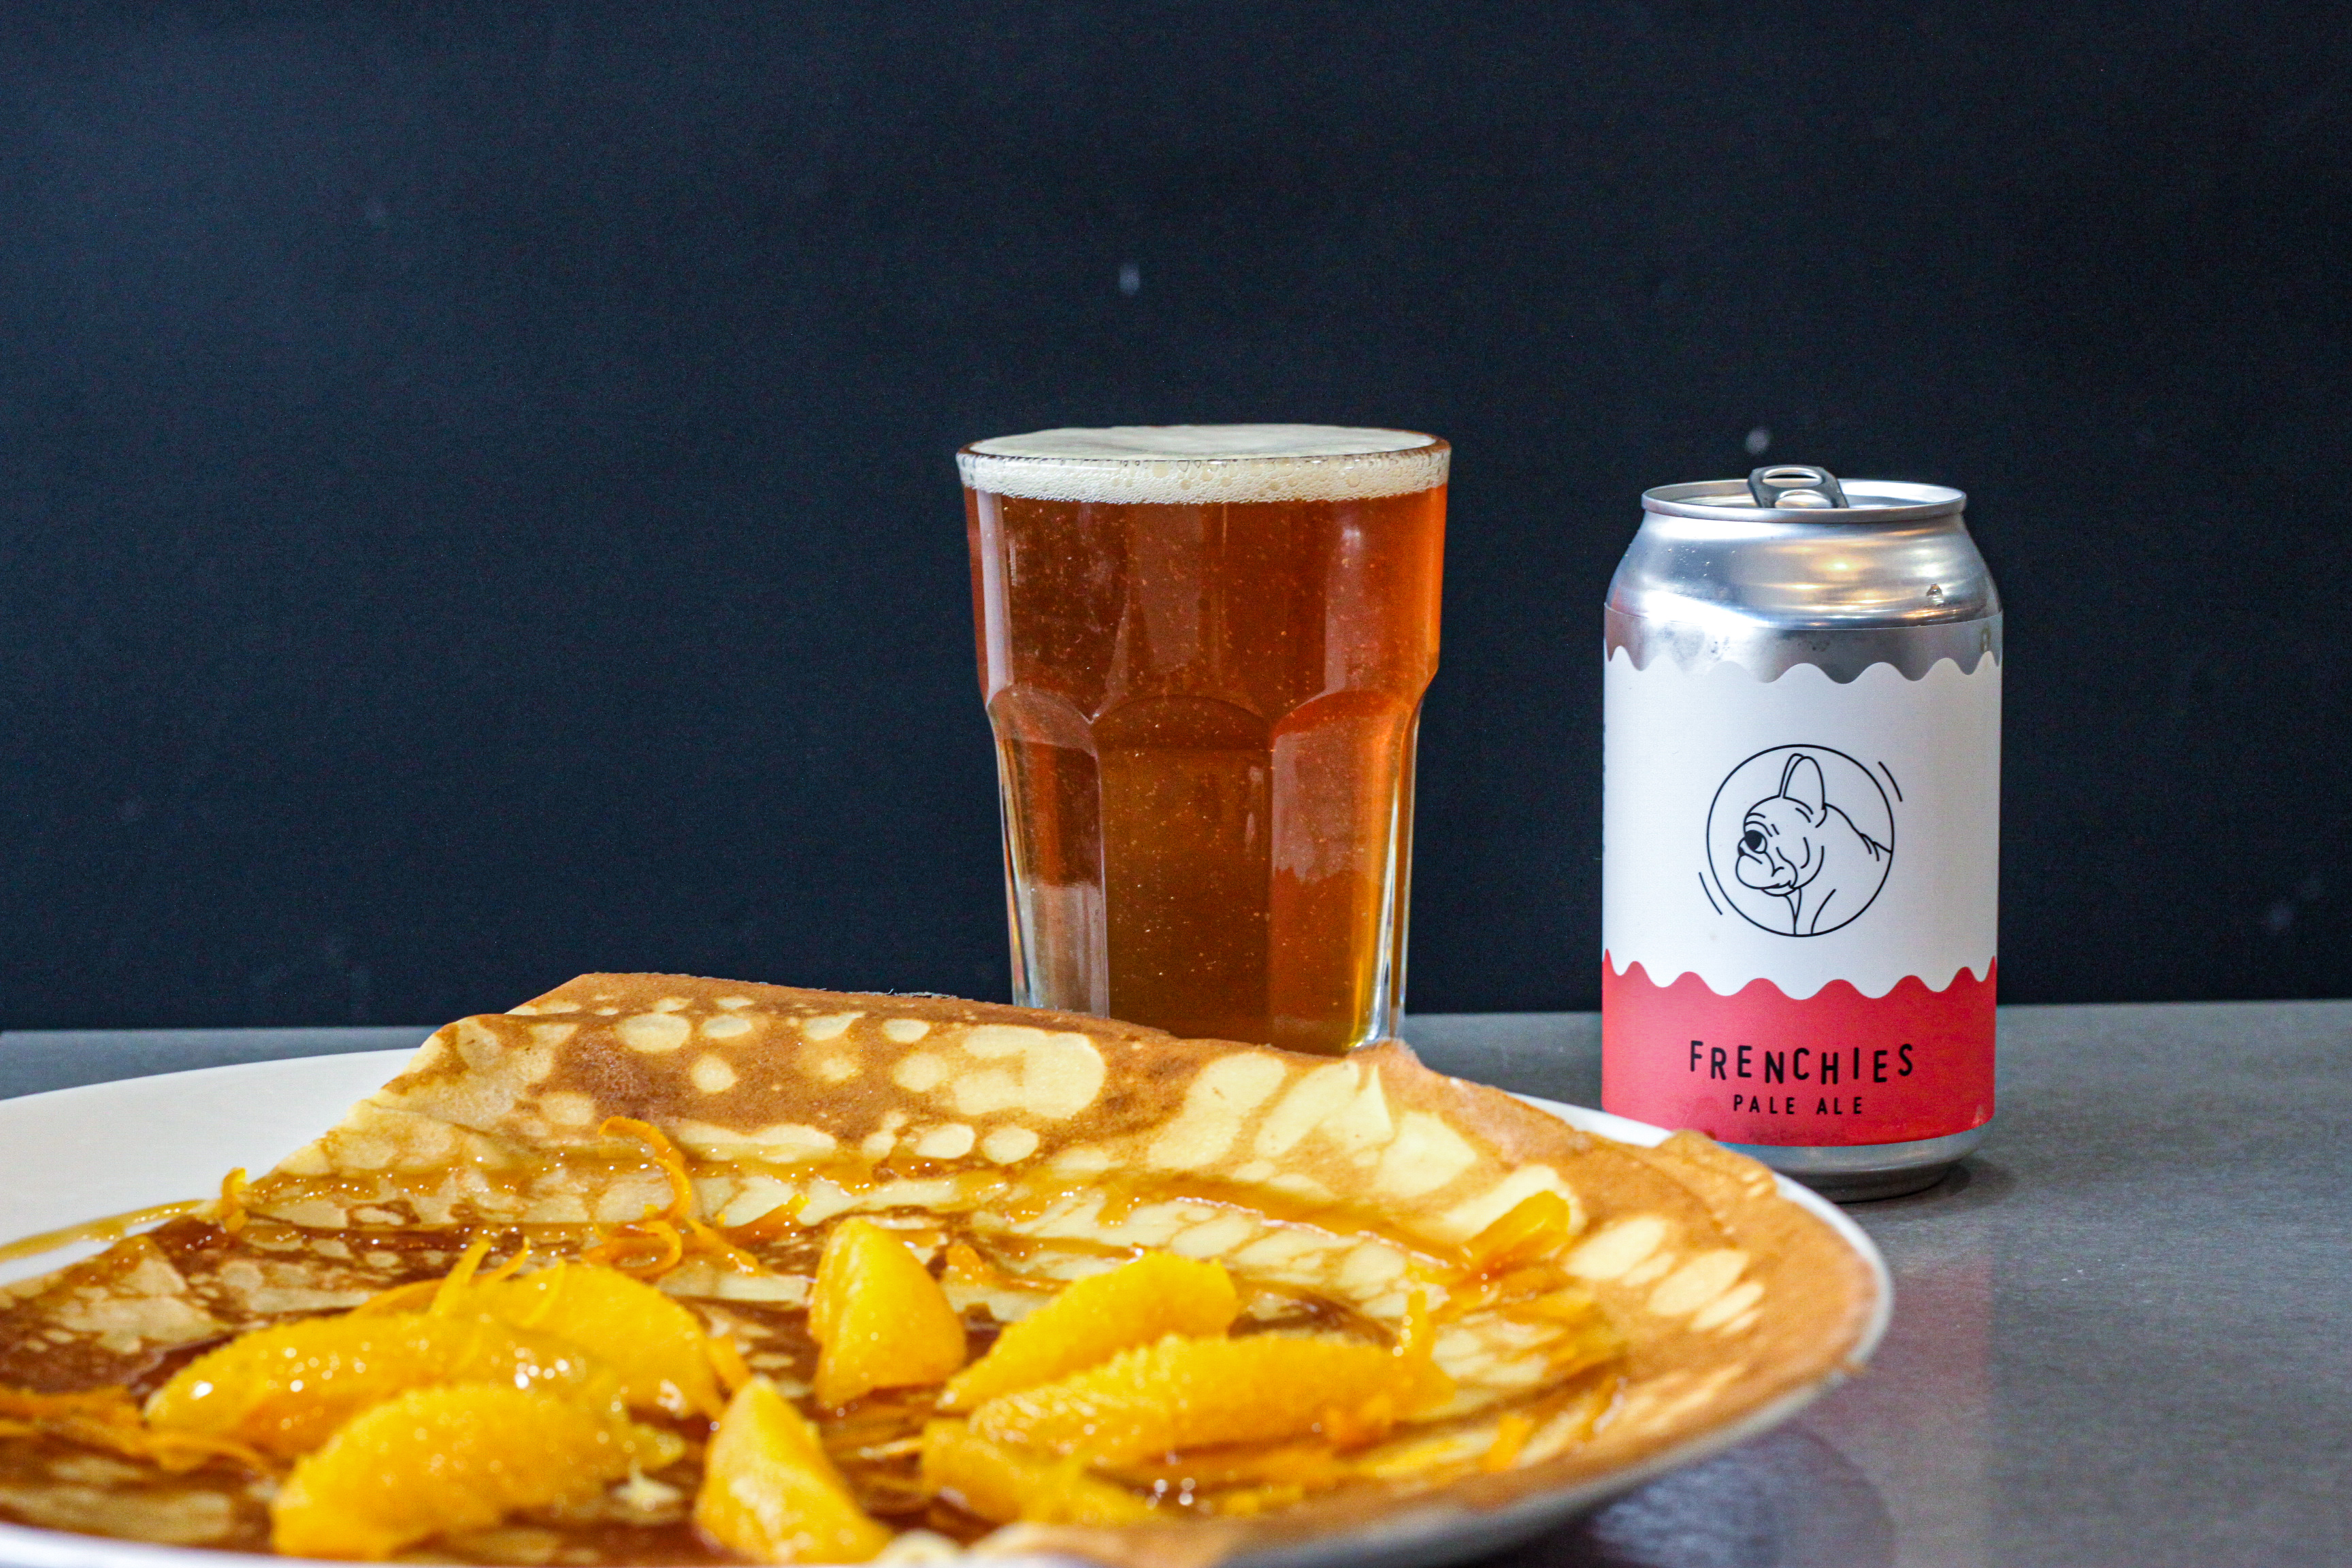 Crepe Suzette with Frenchies pale Ale